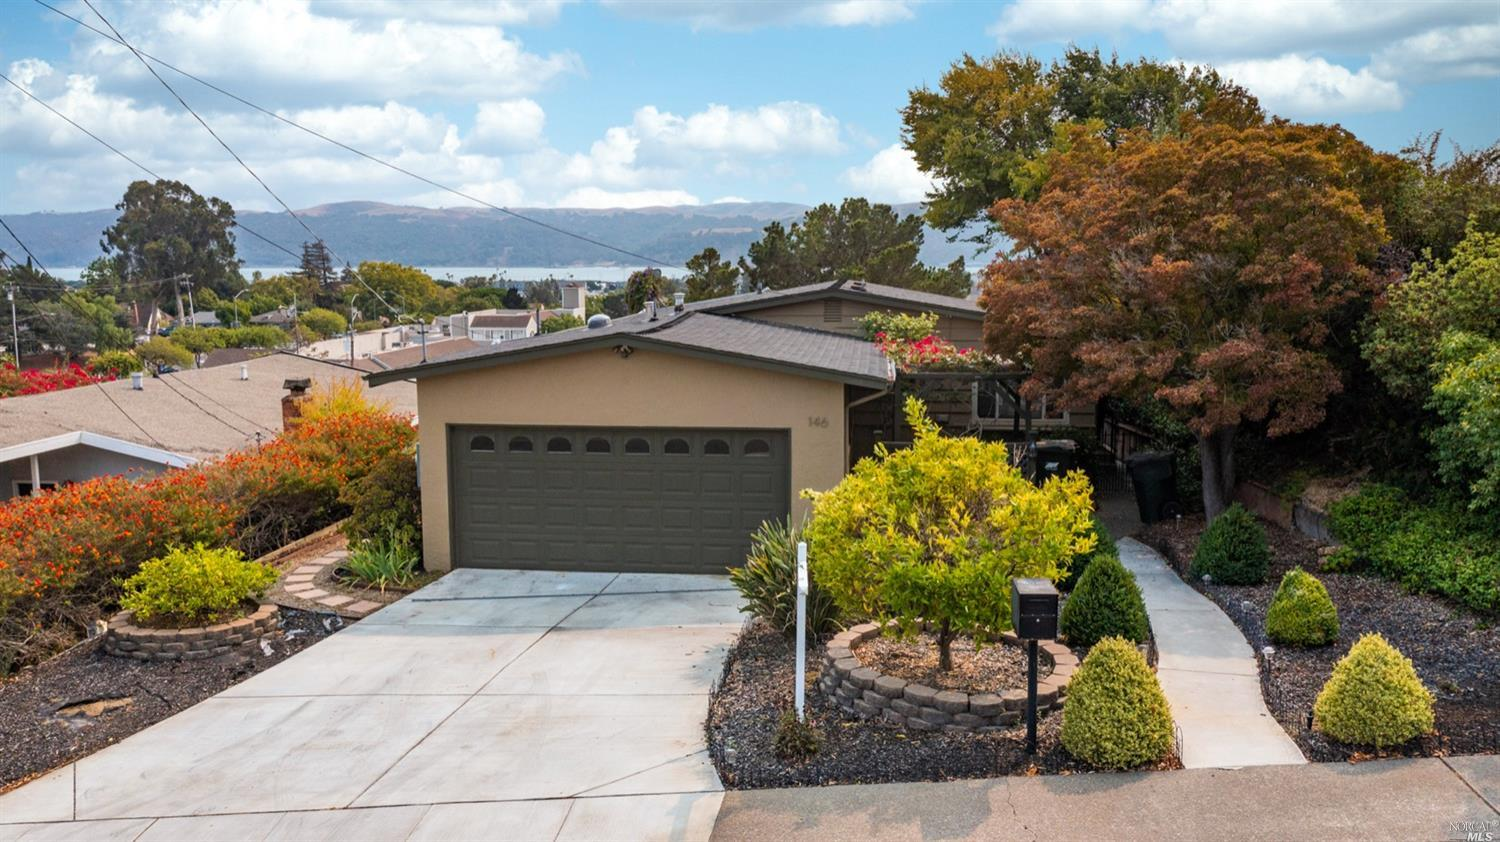 A classic Benicia beauty with gorgeous views of the water. Located just a short walk from downtown, grocery stores, bars, restaurants, city park, and shopping. Enjoy the views on your large deck, perfect for entertaining and relaxing. The home has a lovely open floorpan, updated throughout, beautiful hardwood floors, air conditioning, tankless water heater, and a large lot. Don't miss the handful of fruit trees, including avocado and Meyer lemon. Close proximity to the highway for ease of transportation.